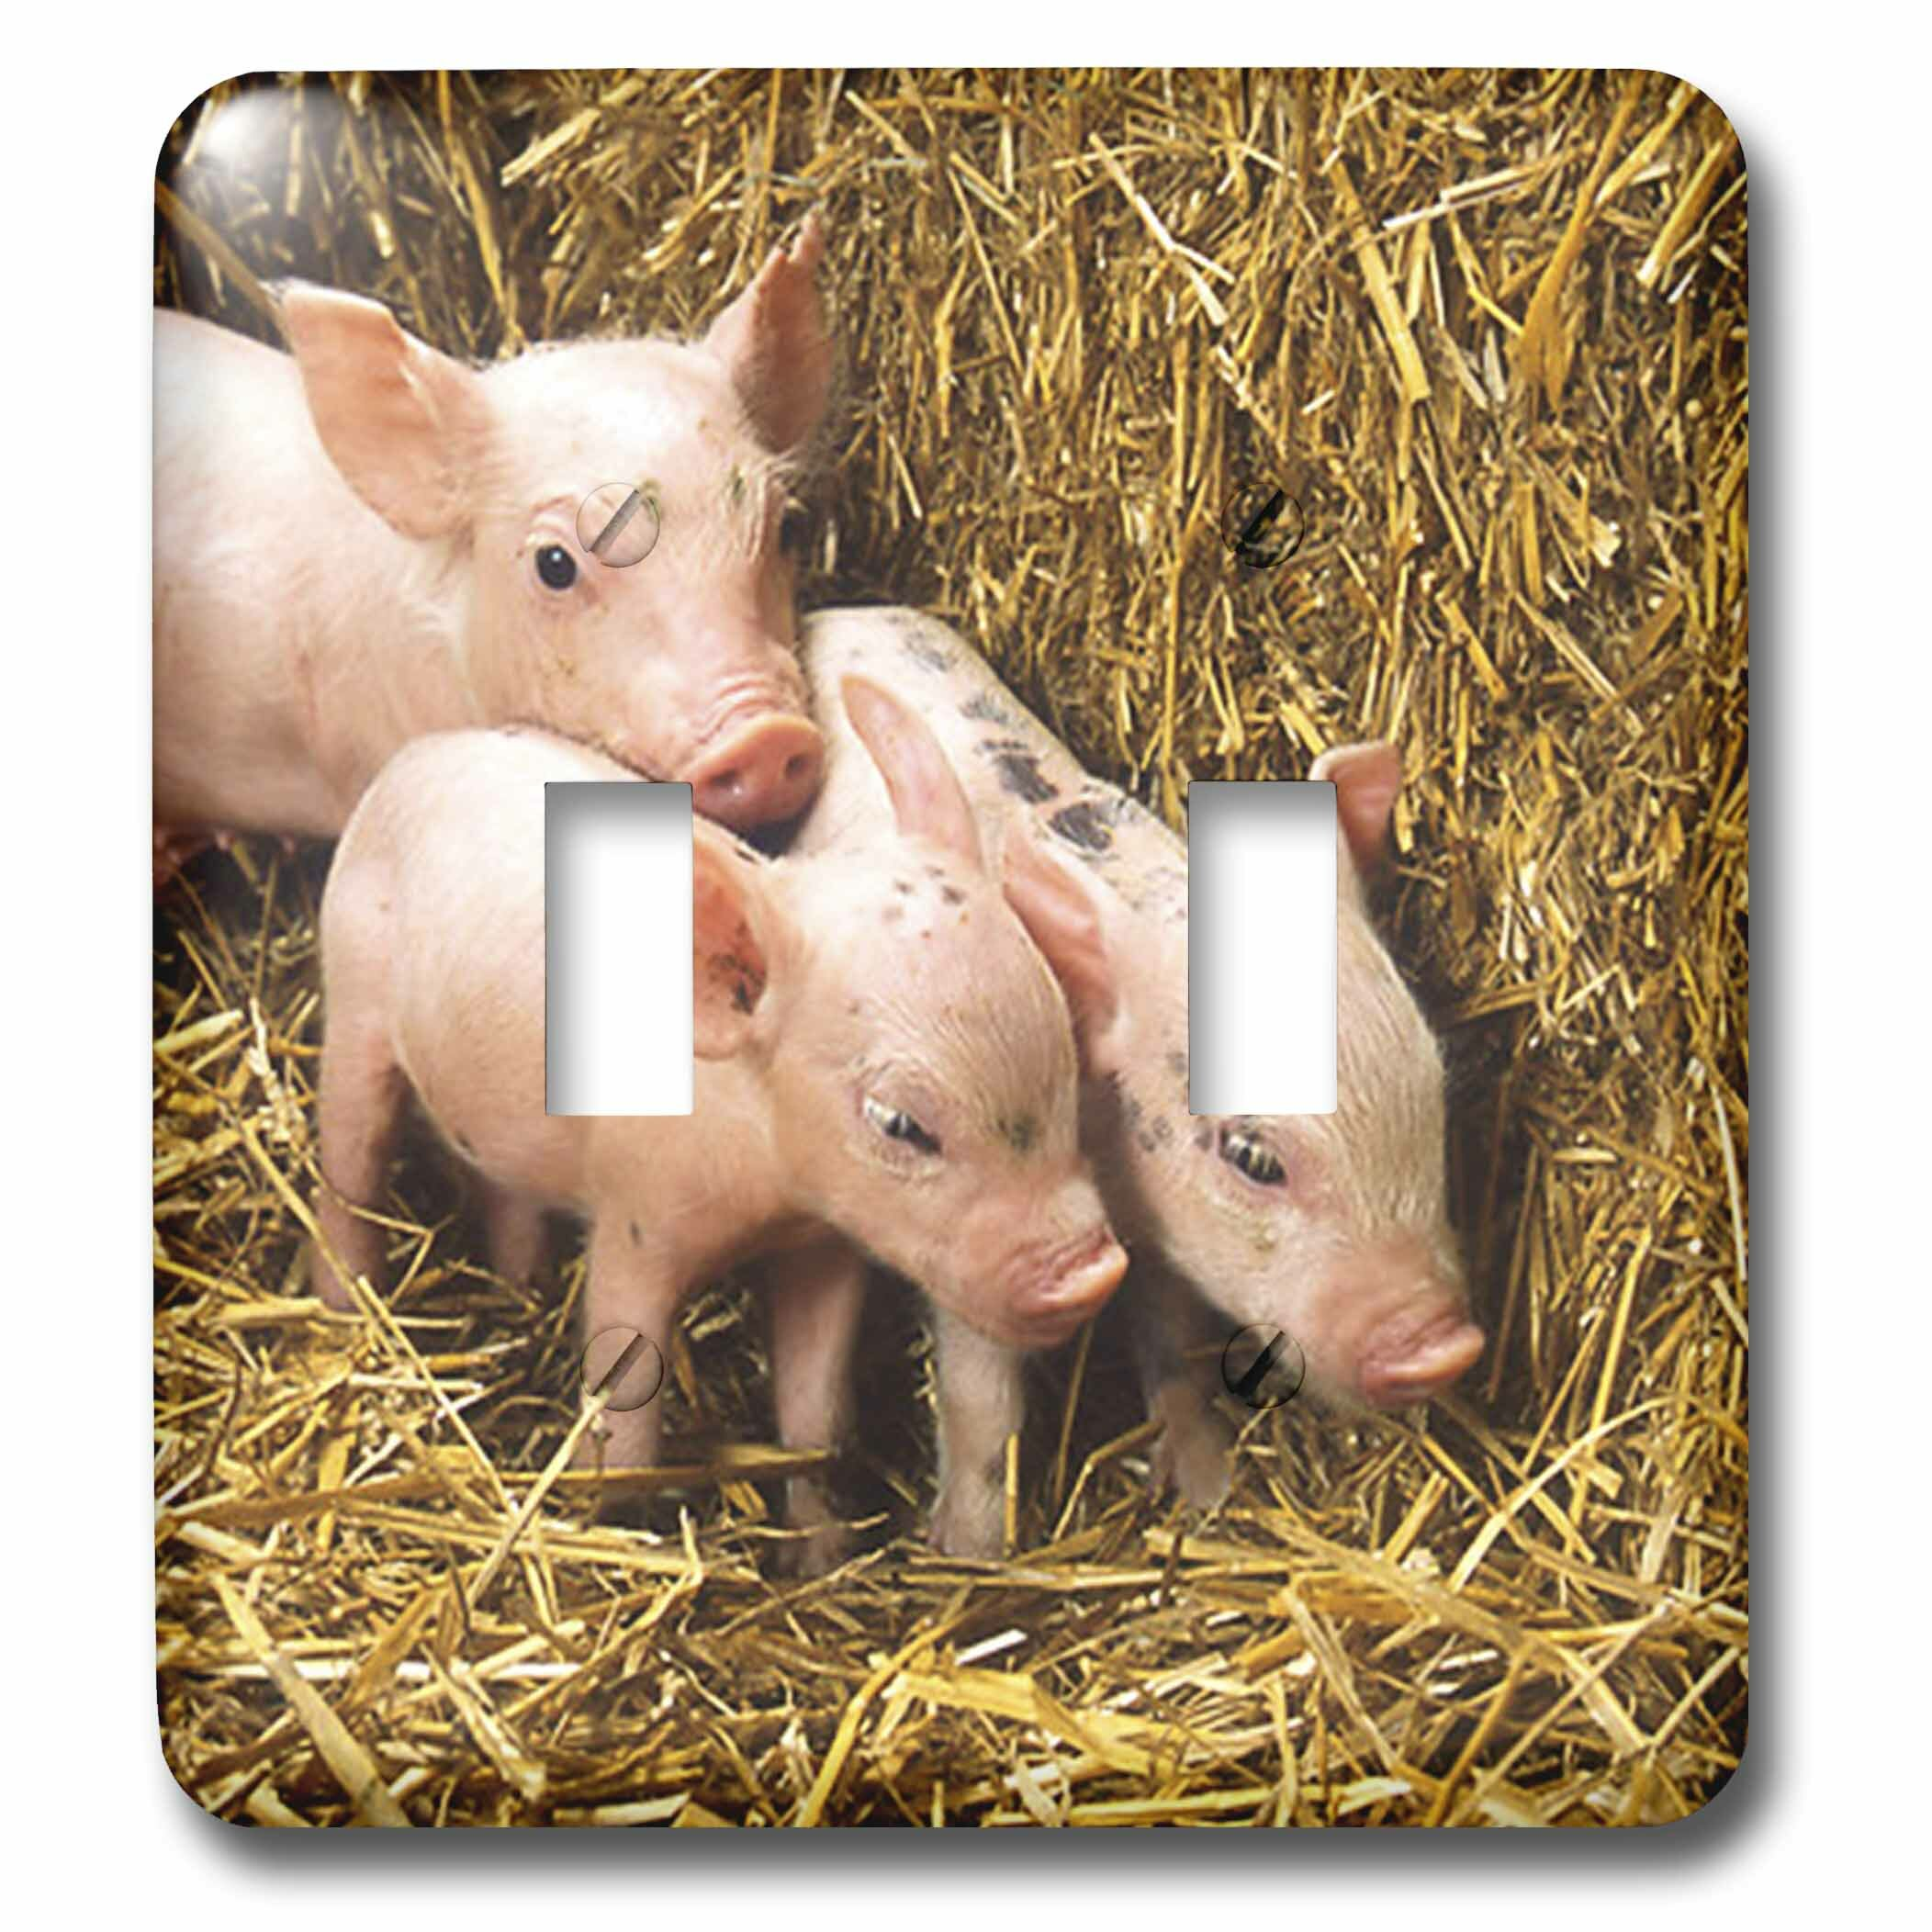 3drose 3 Little Pigs And Hay 2 Gang Toggle Light Switch Wall Plate Wayfair